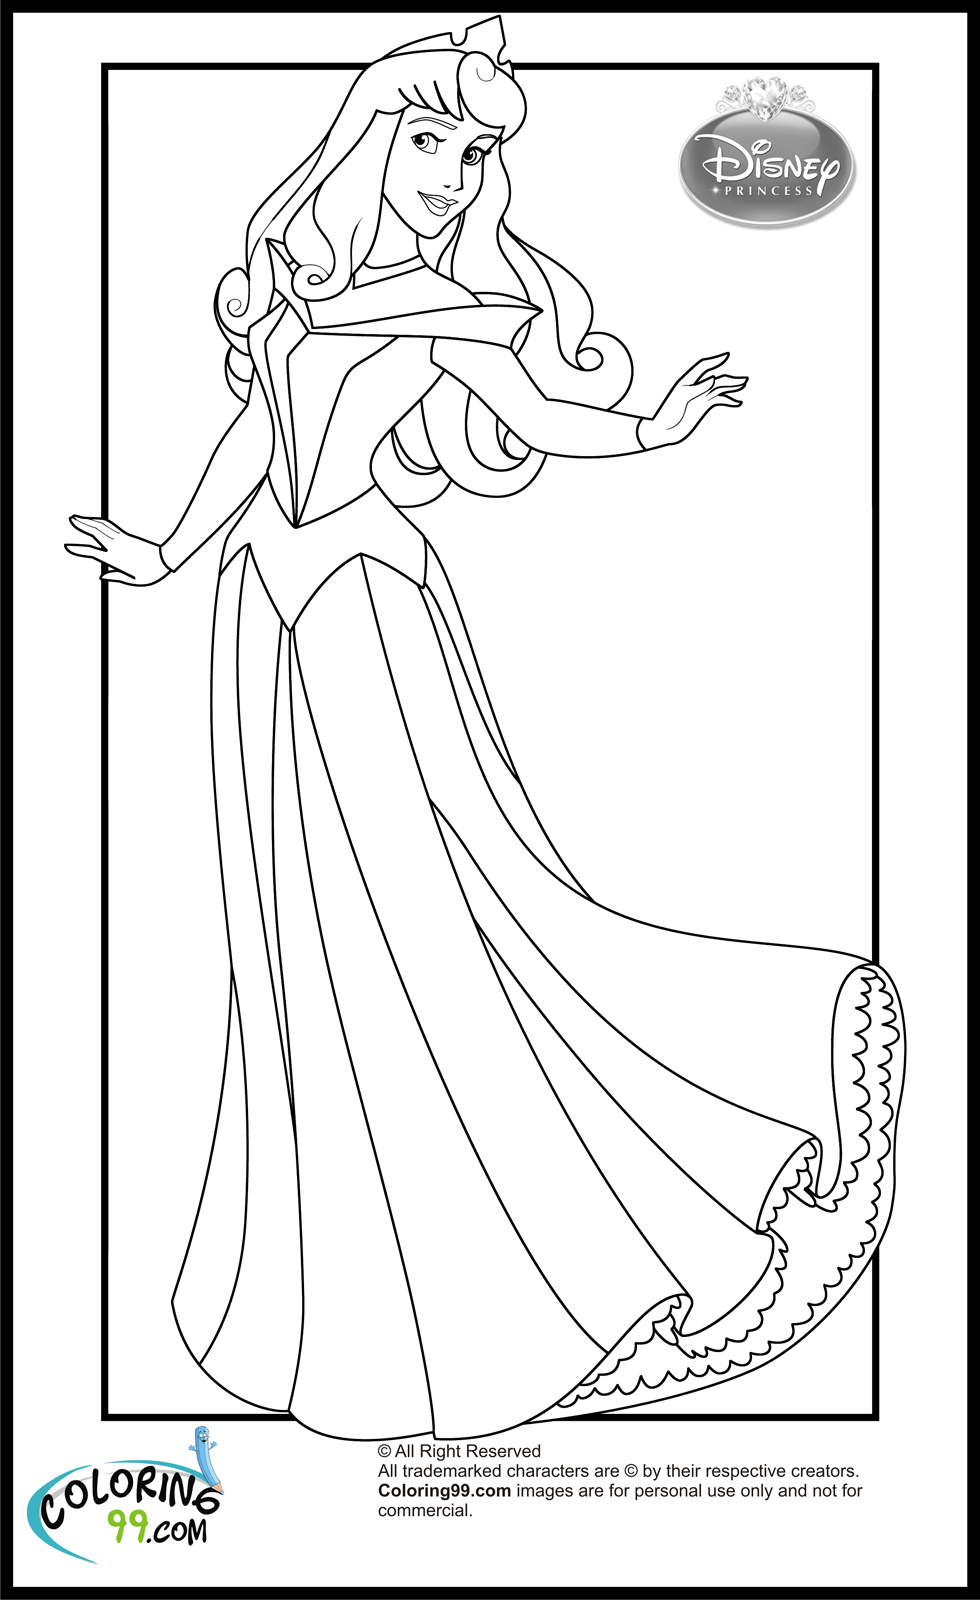 colouring pages for disney princesses disney princess coloring pages minister coloring pages colouring princesses disney for